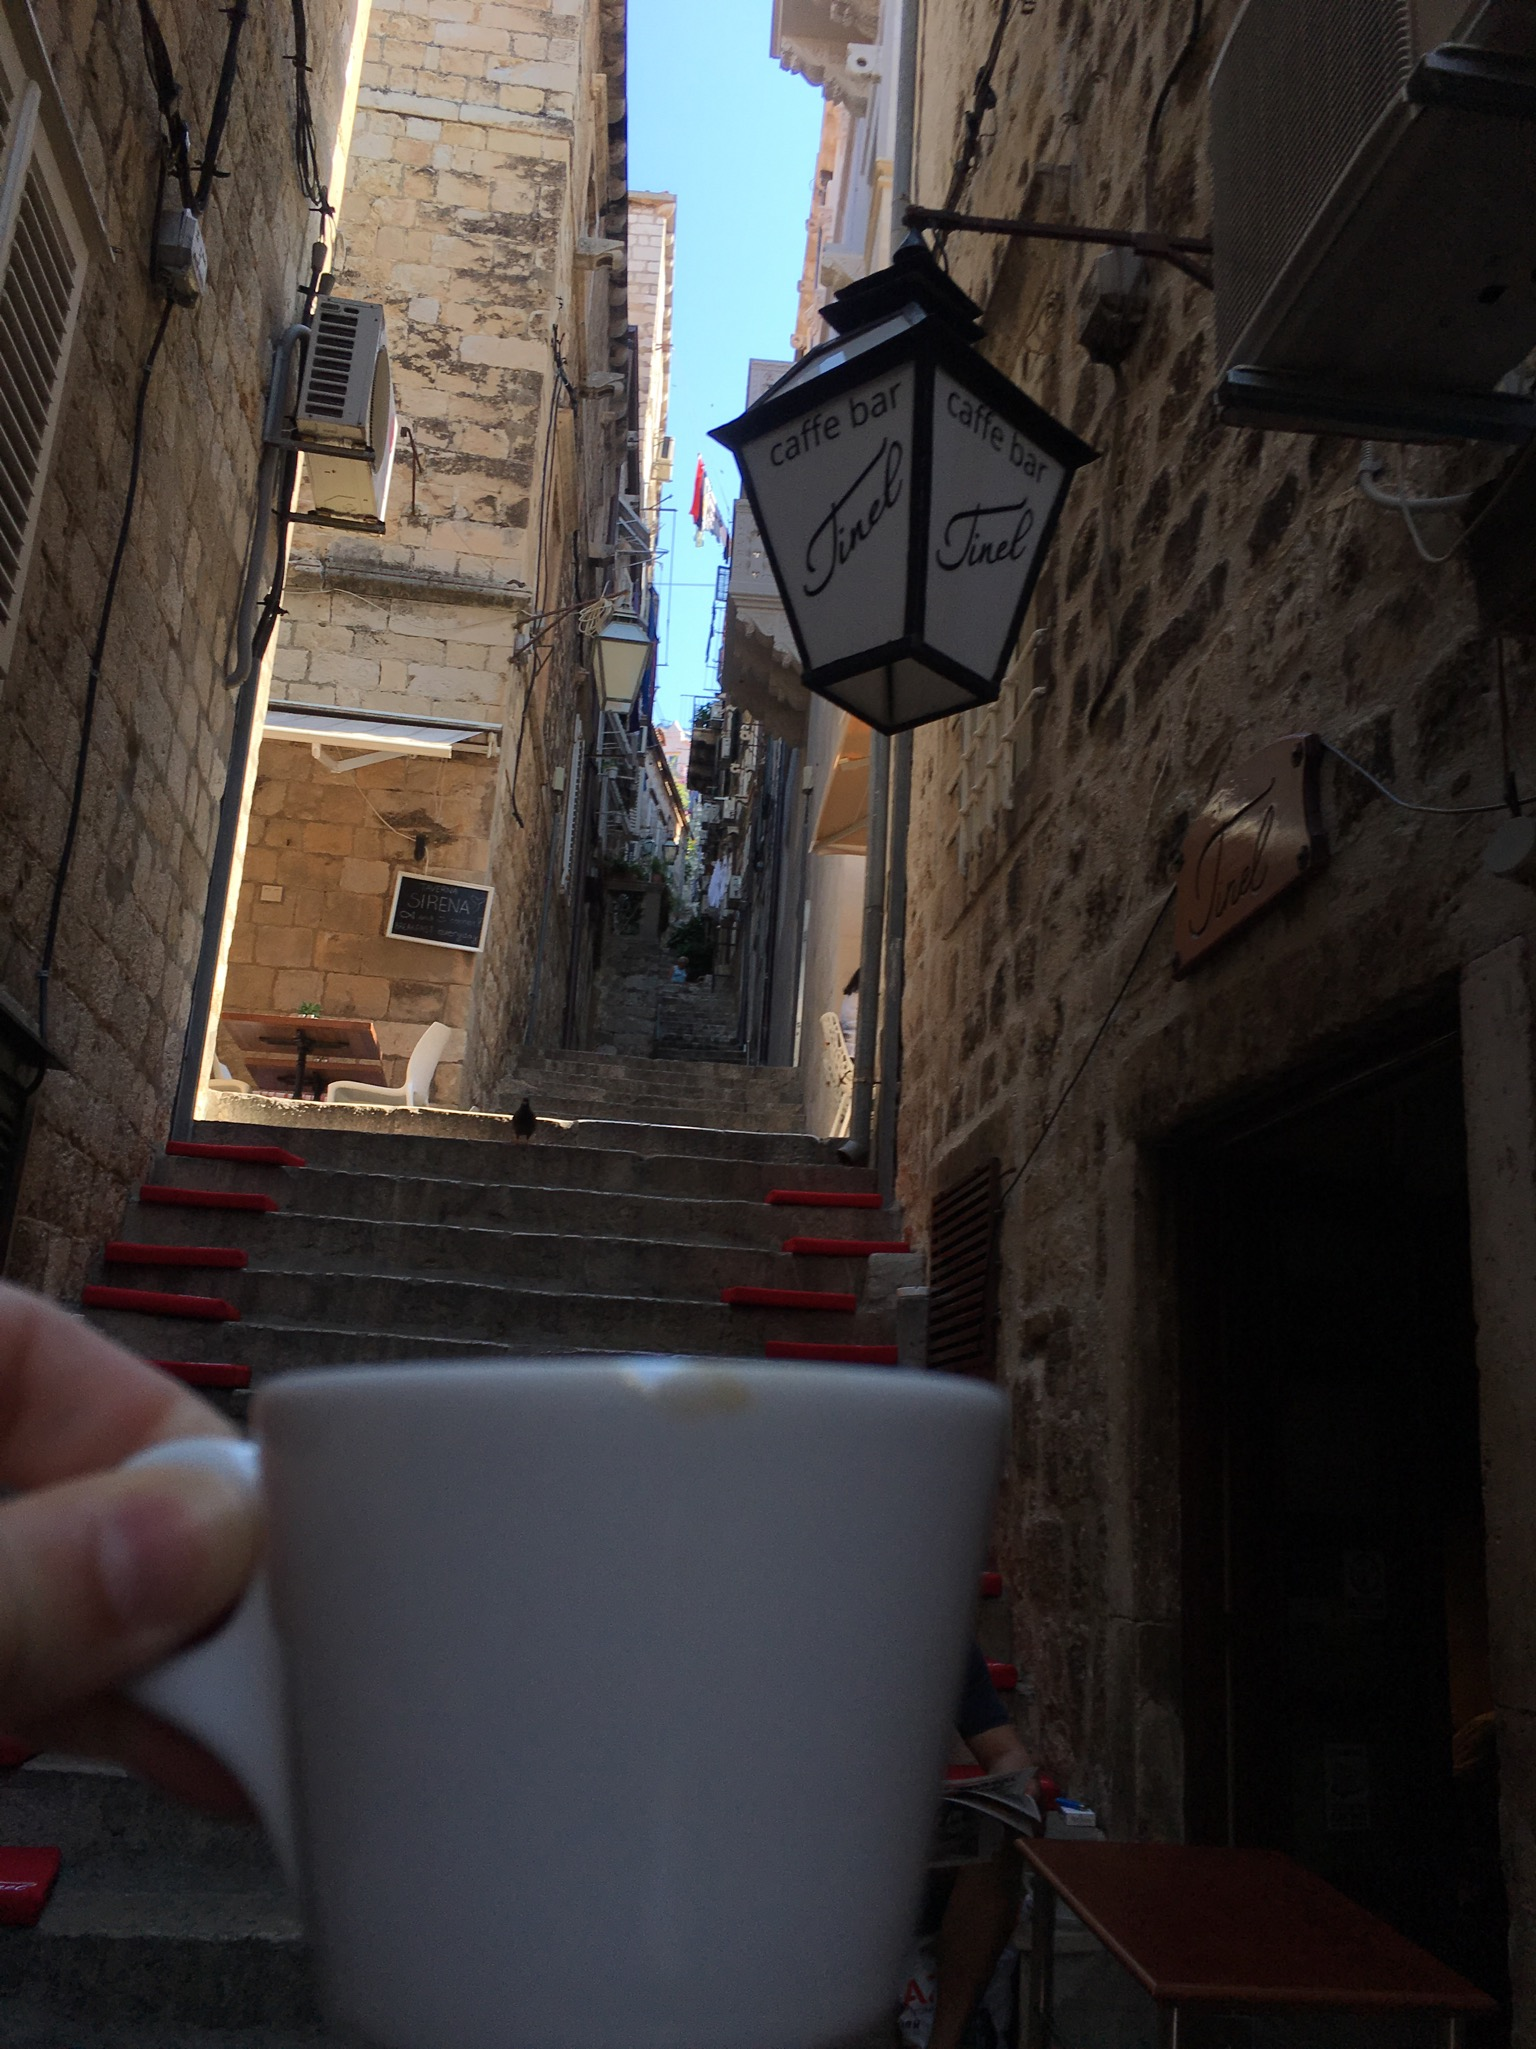 Morning coffee at Tinel